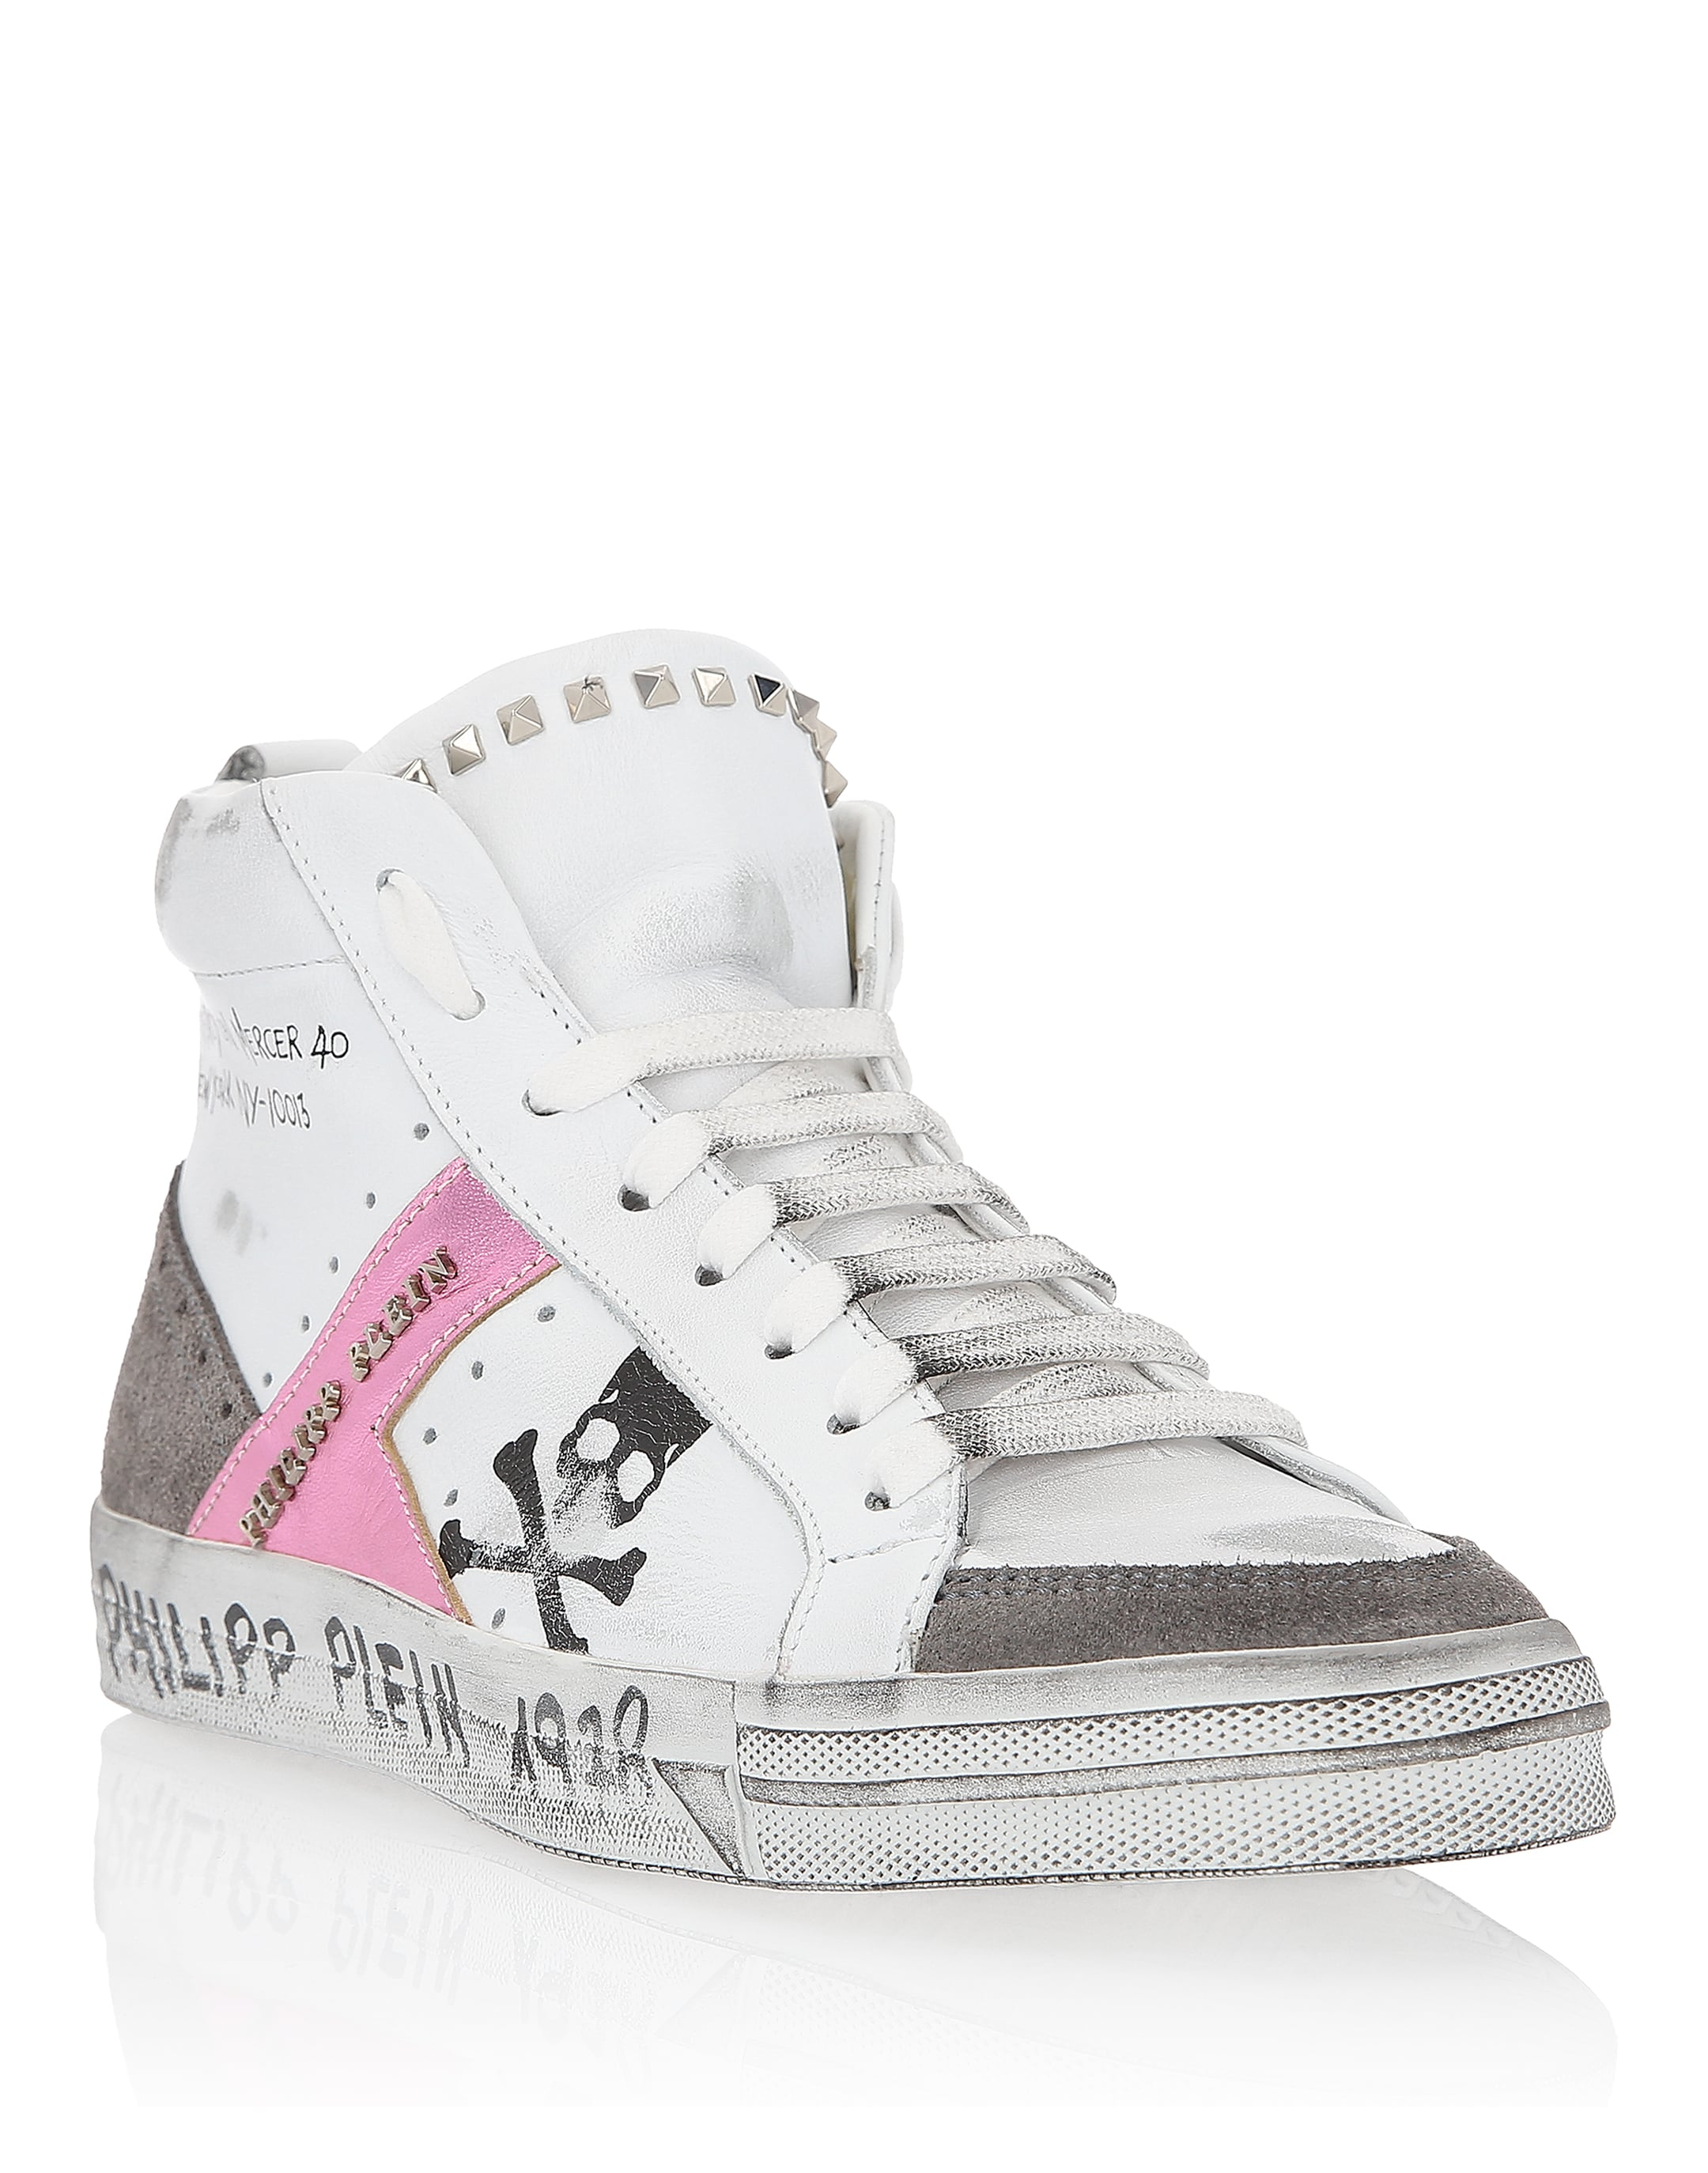 Philipp Plein Mid-Top Sneakers MM ful7ll